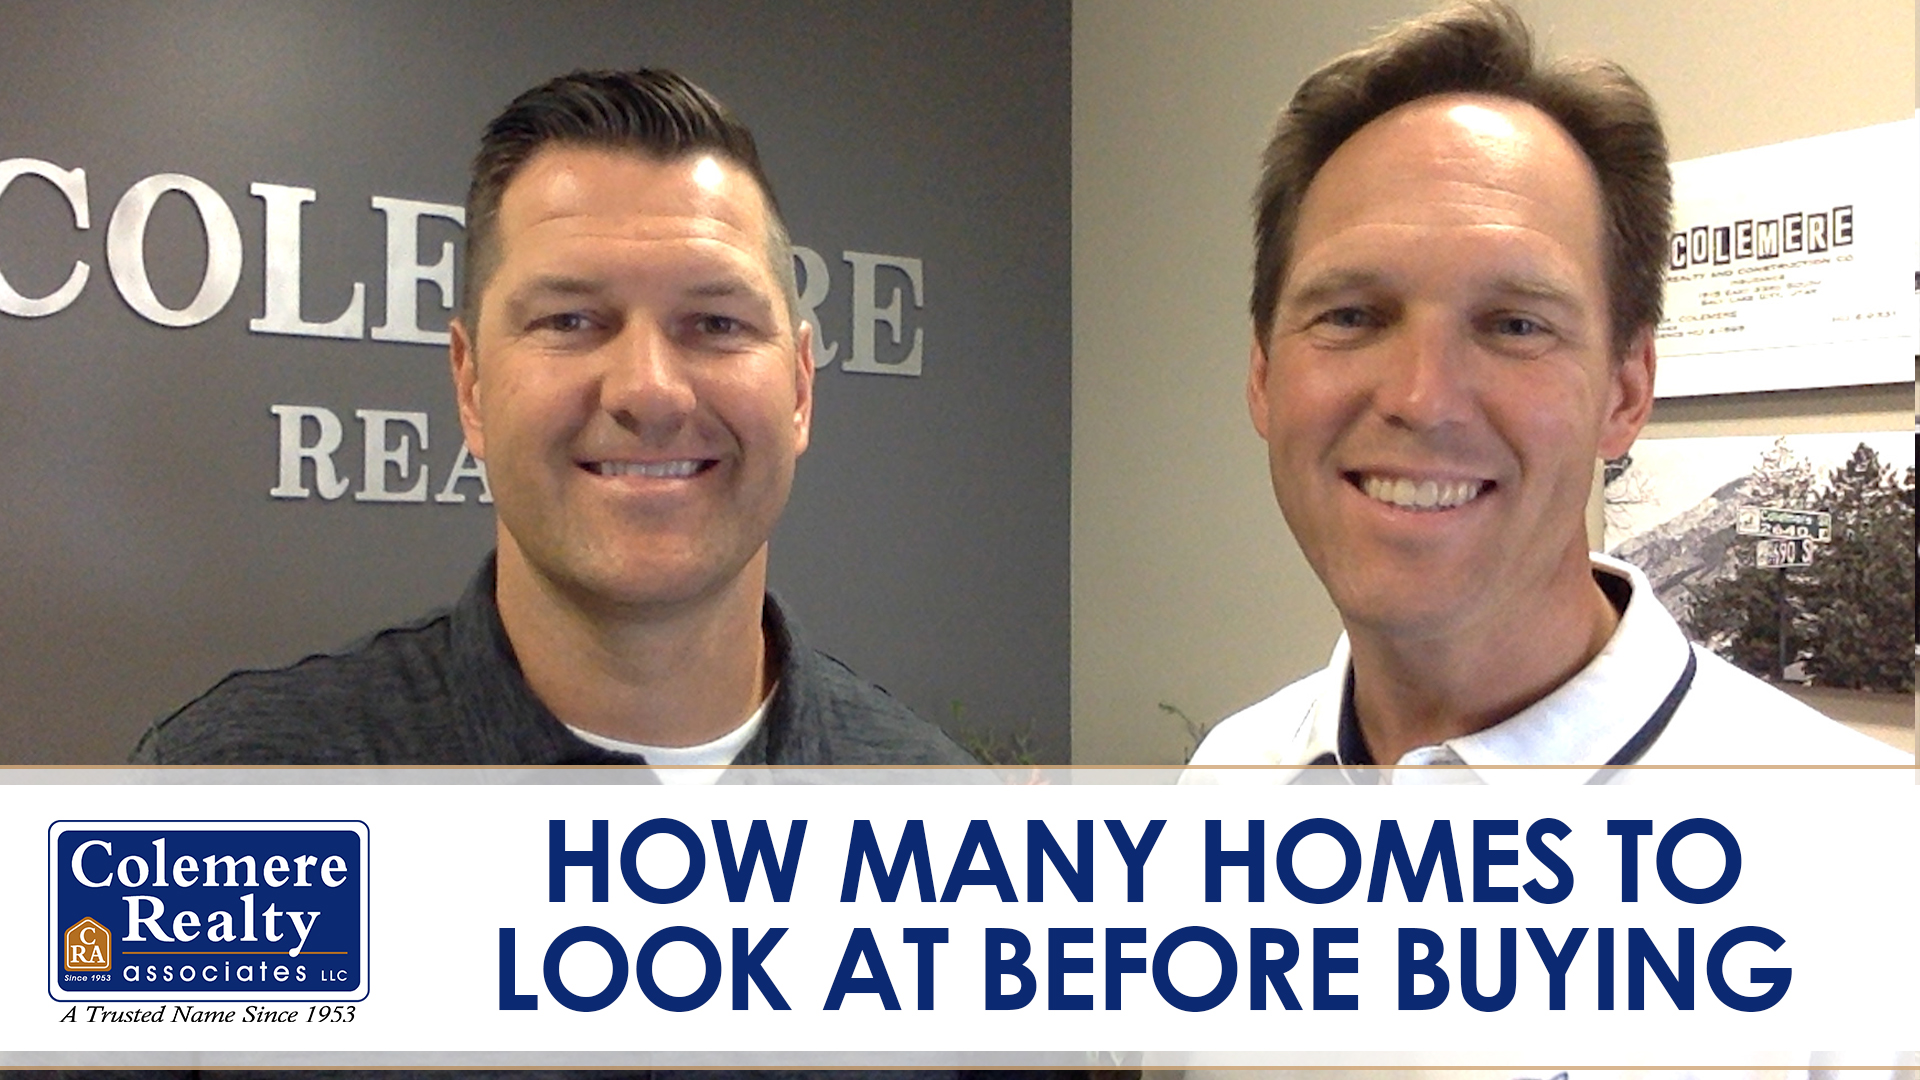 How Many Homes Should You Look at Before You Buy?